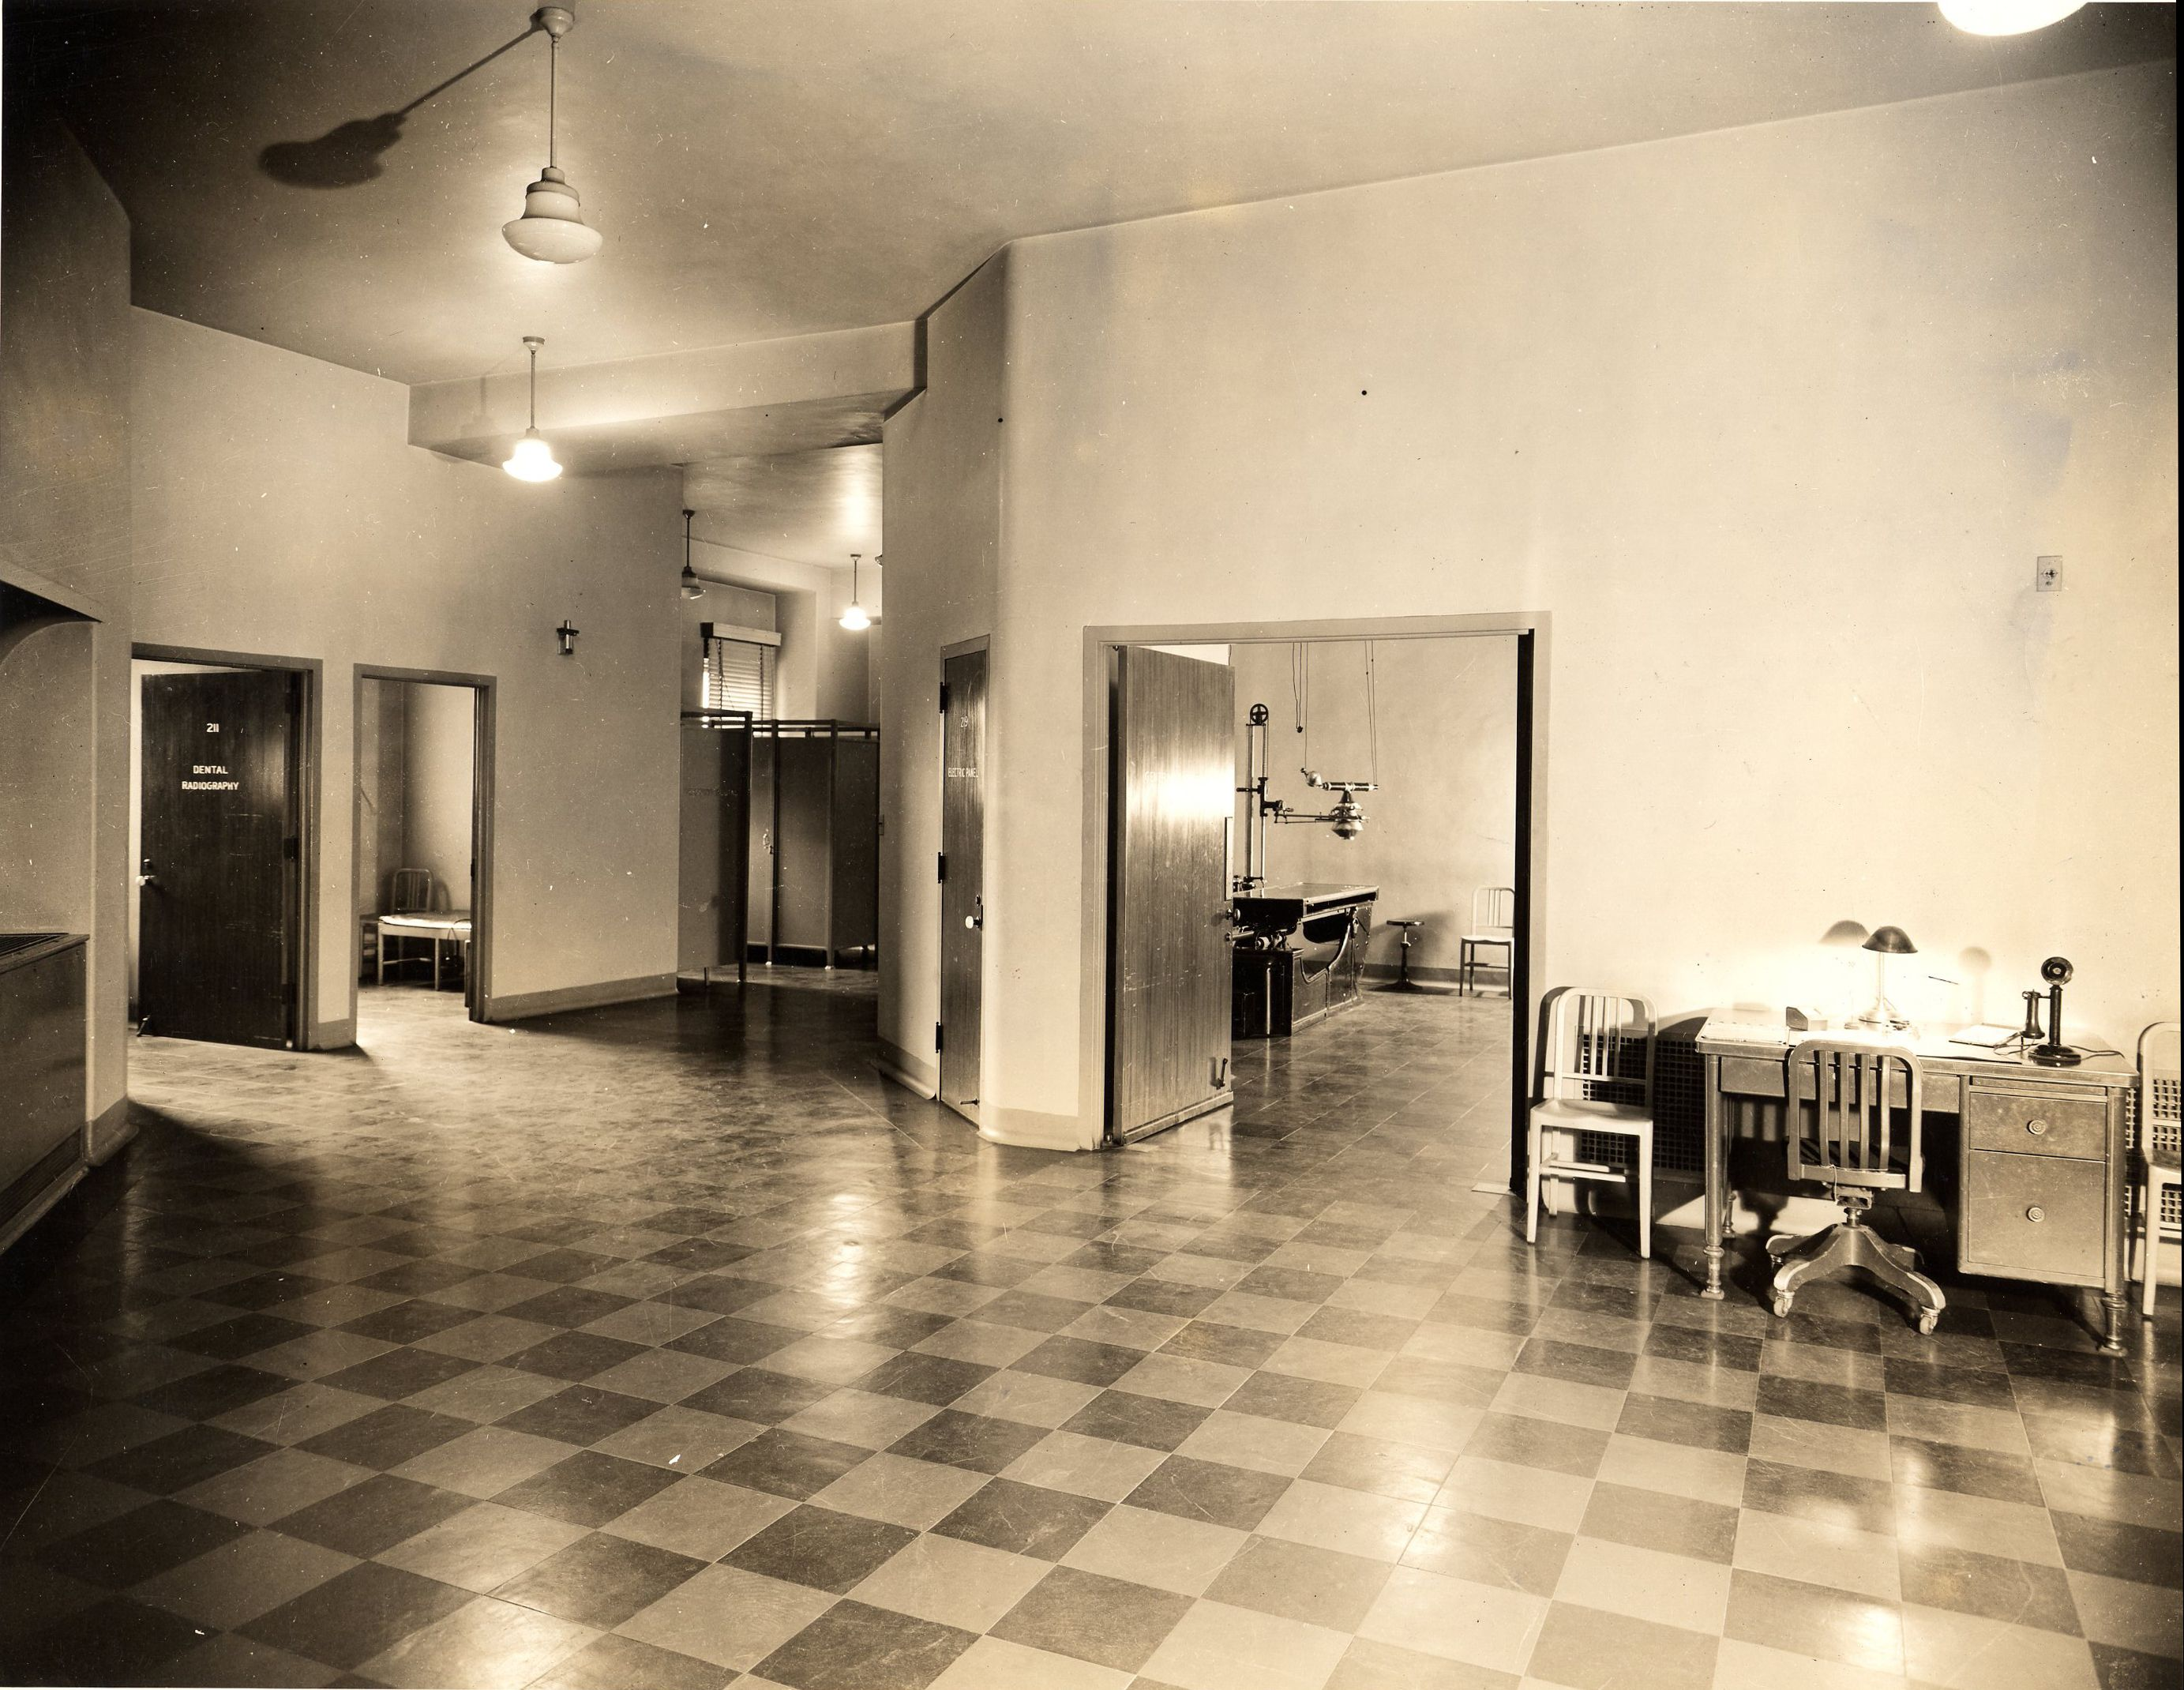 X Ray Room At Barnes Hospital In 1951 Historical